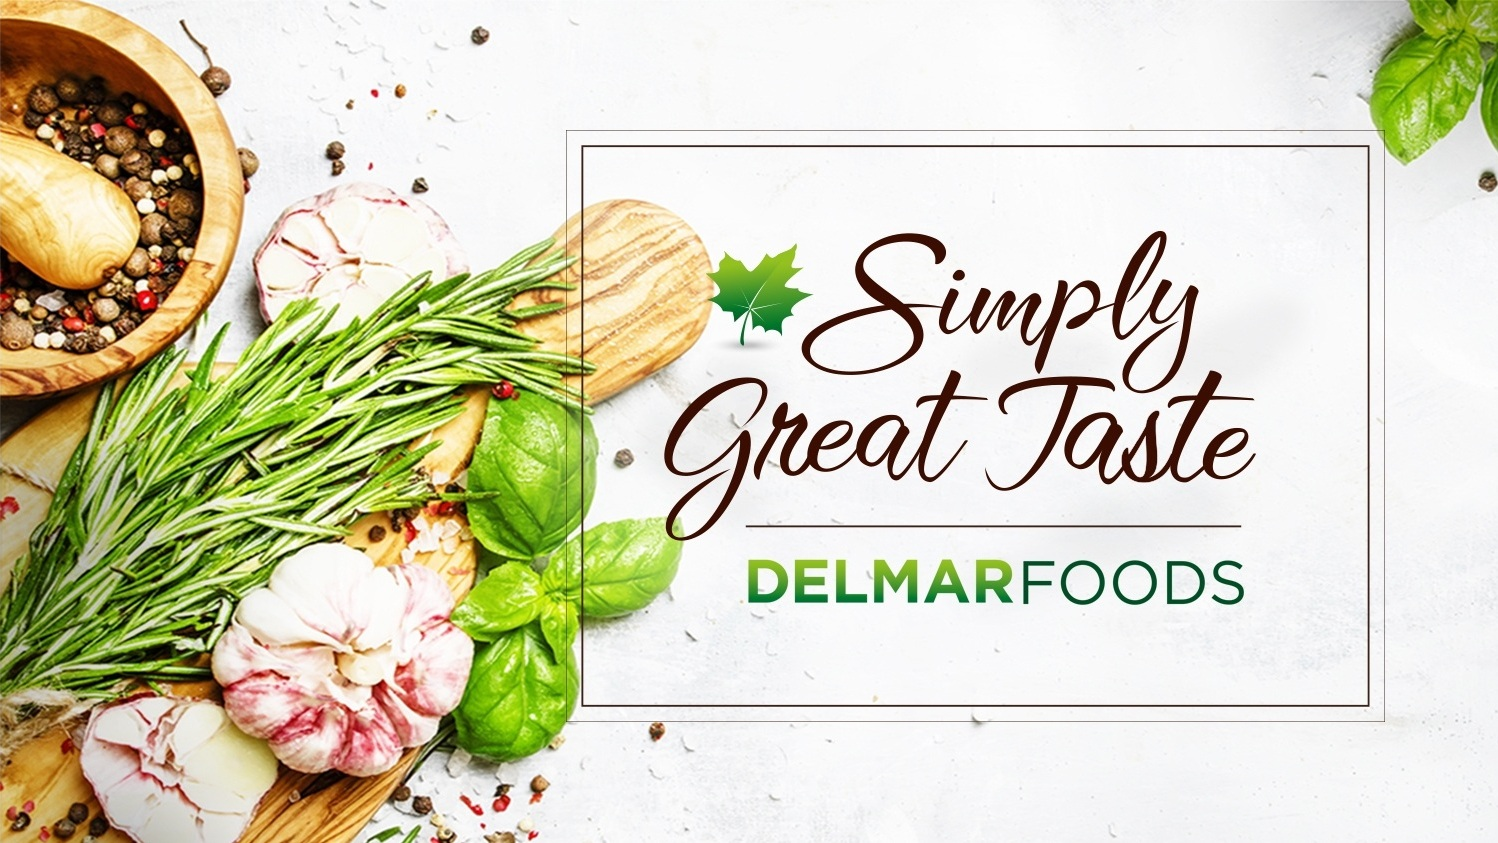 DelmarFoods - Simply Great Taste.jpg